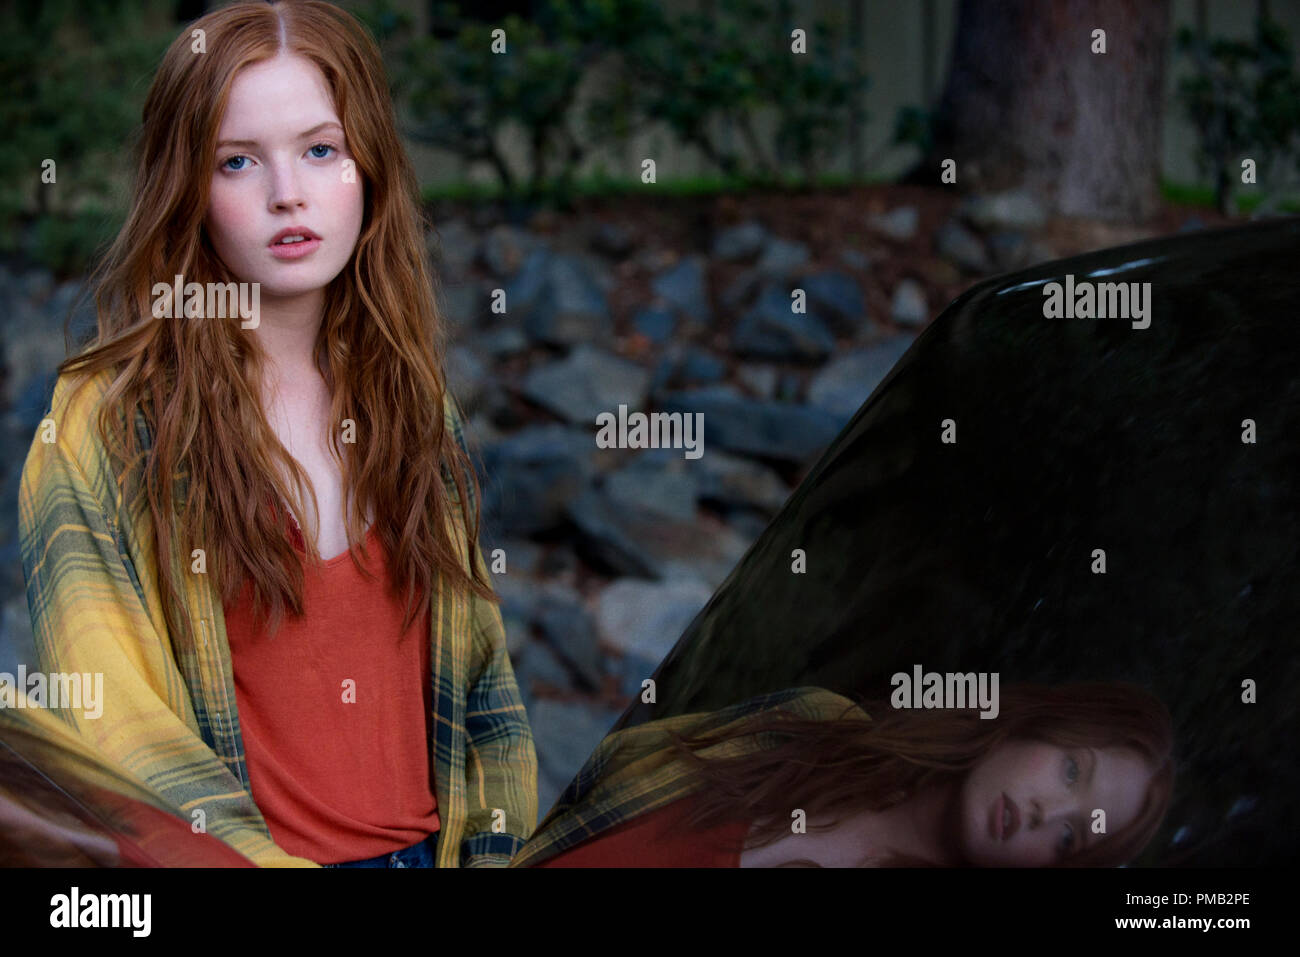 Ellie Bamber stars as India Hastings in writer/director Tom Ford's romantic thriller, NOCTURNAL ANIMALS, a Focus Features release. (2016) - Stock Image